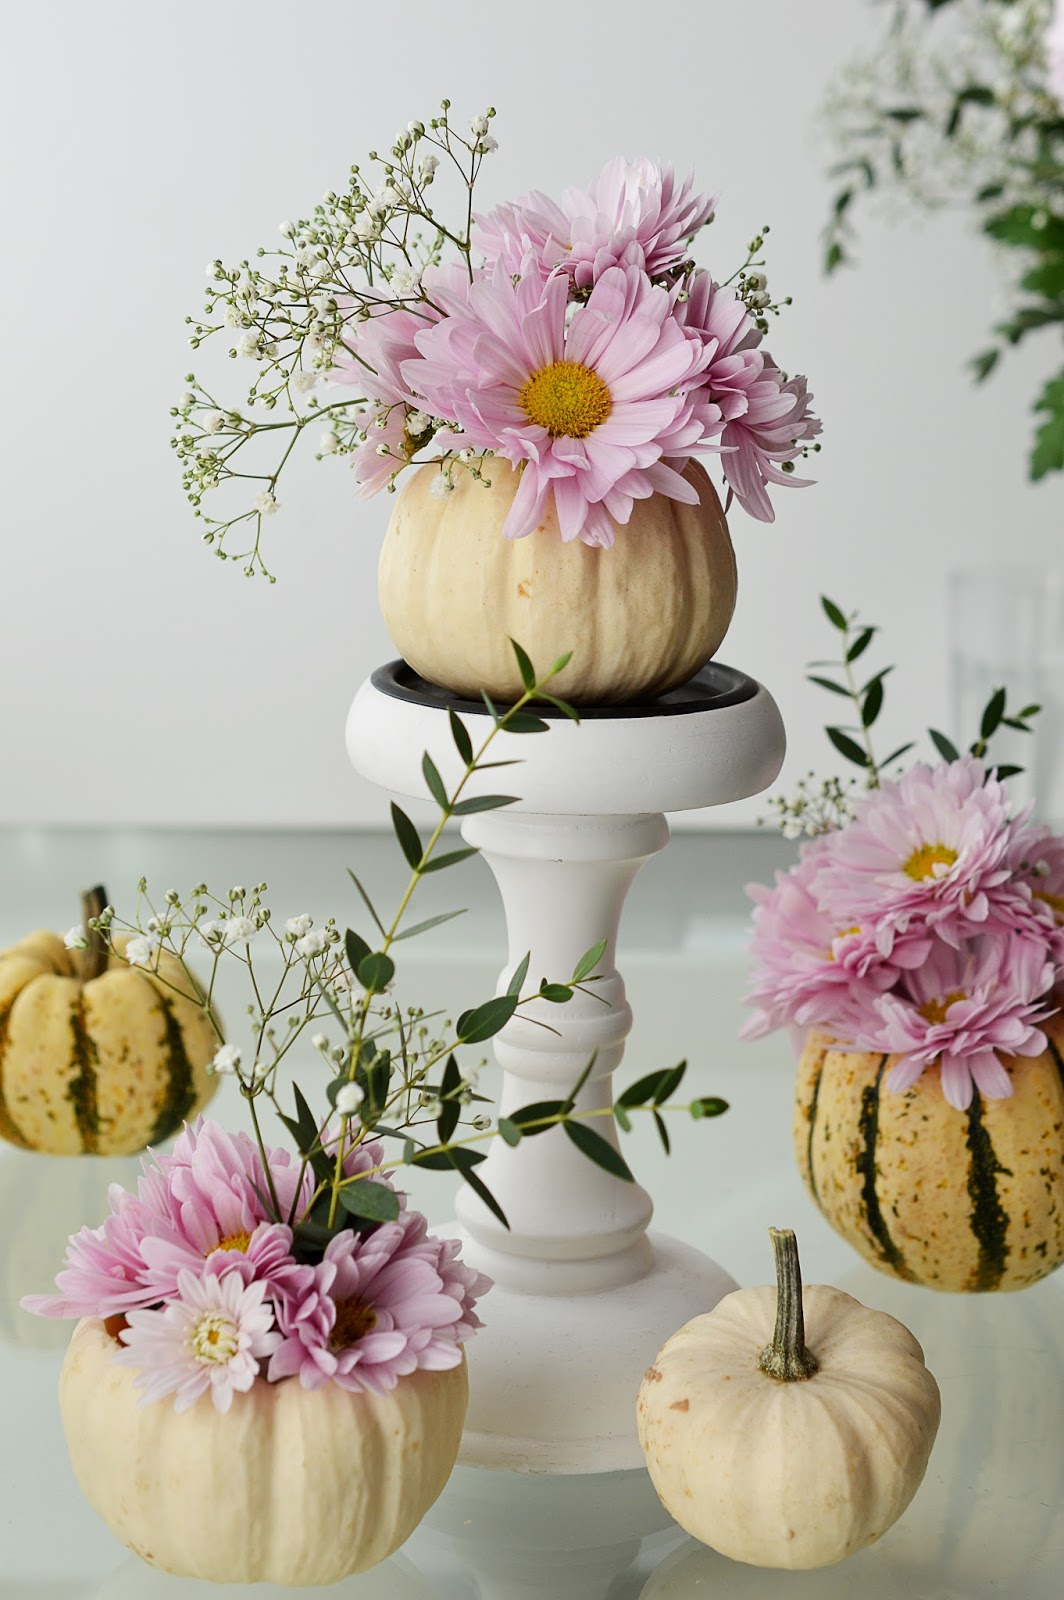 DIY Pumpkin Vases | Motte's Blog